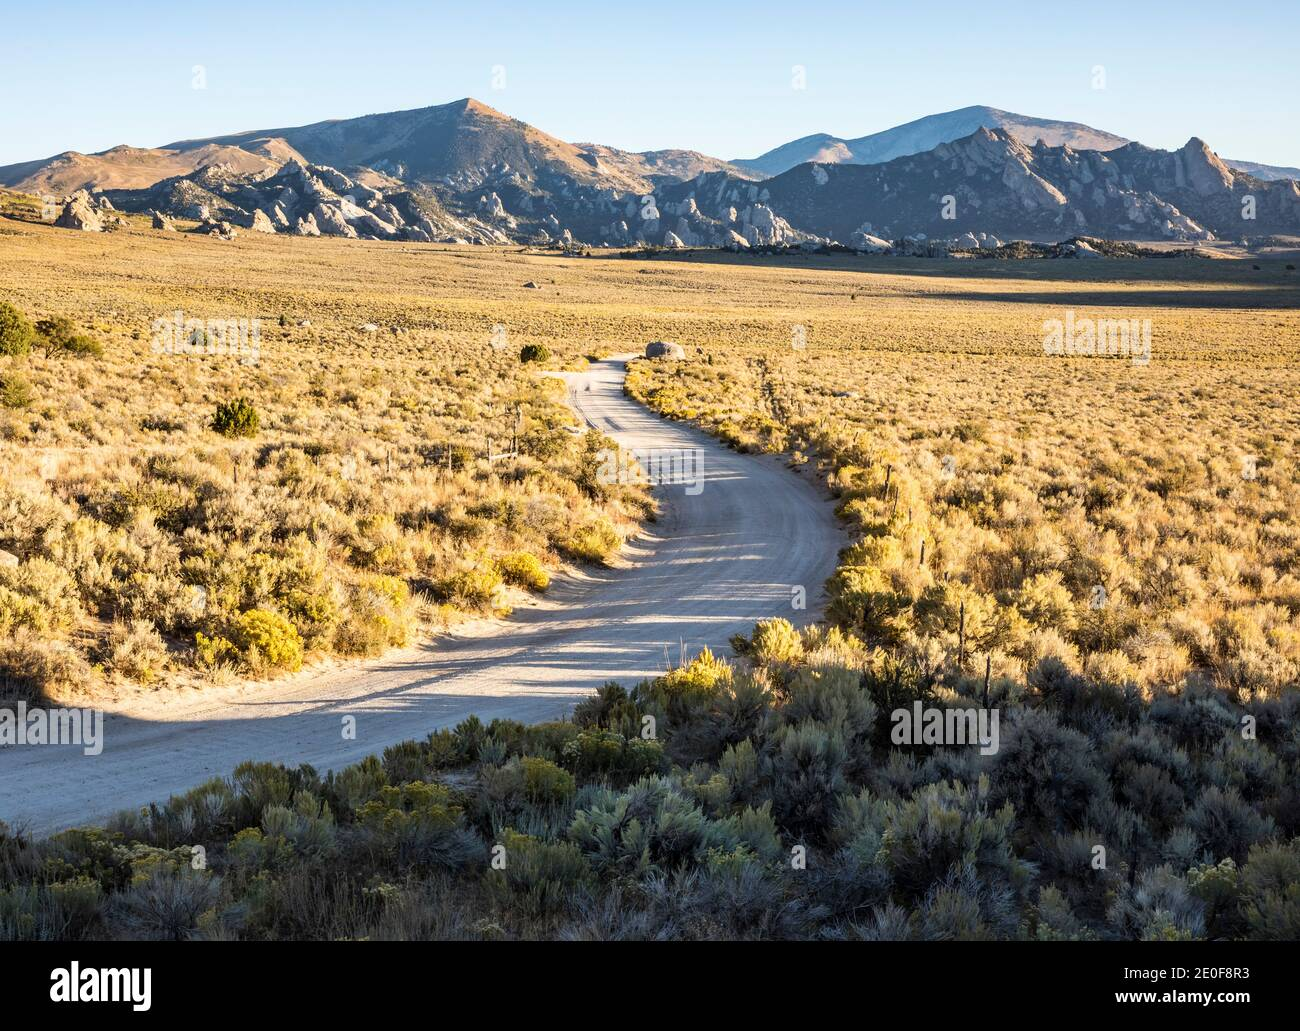 South Twin Sister Road as it winds through the sagebrush towards City of Rocks National Reserve proper, Idaho, USA. Stock Photo